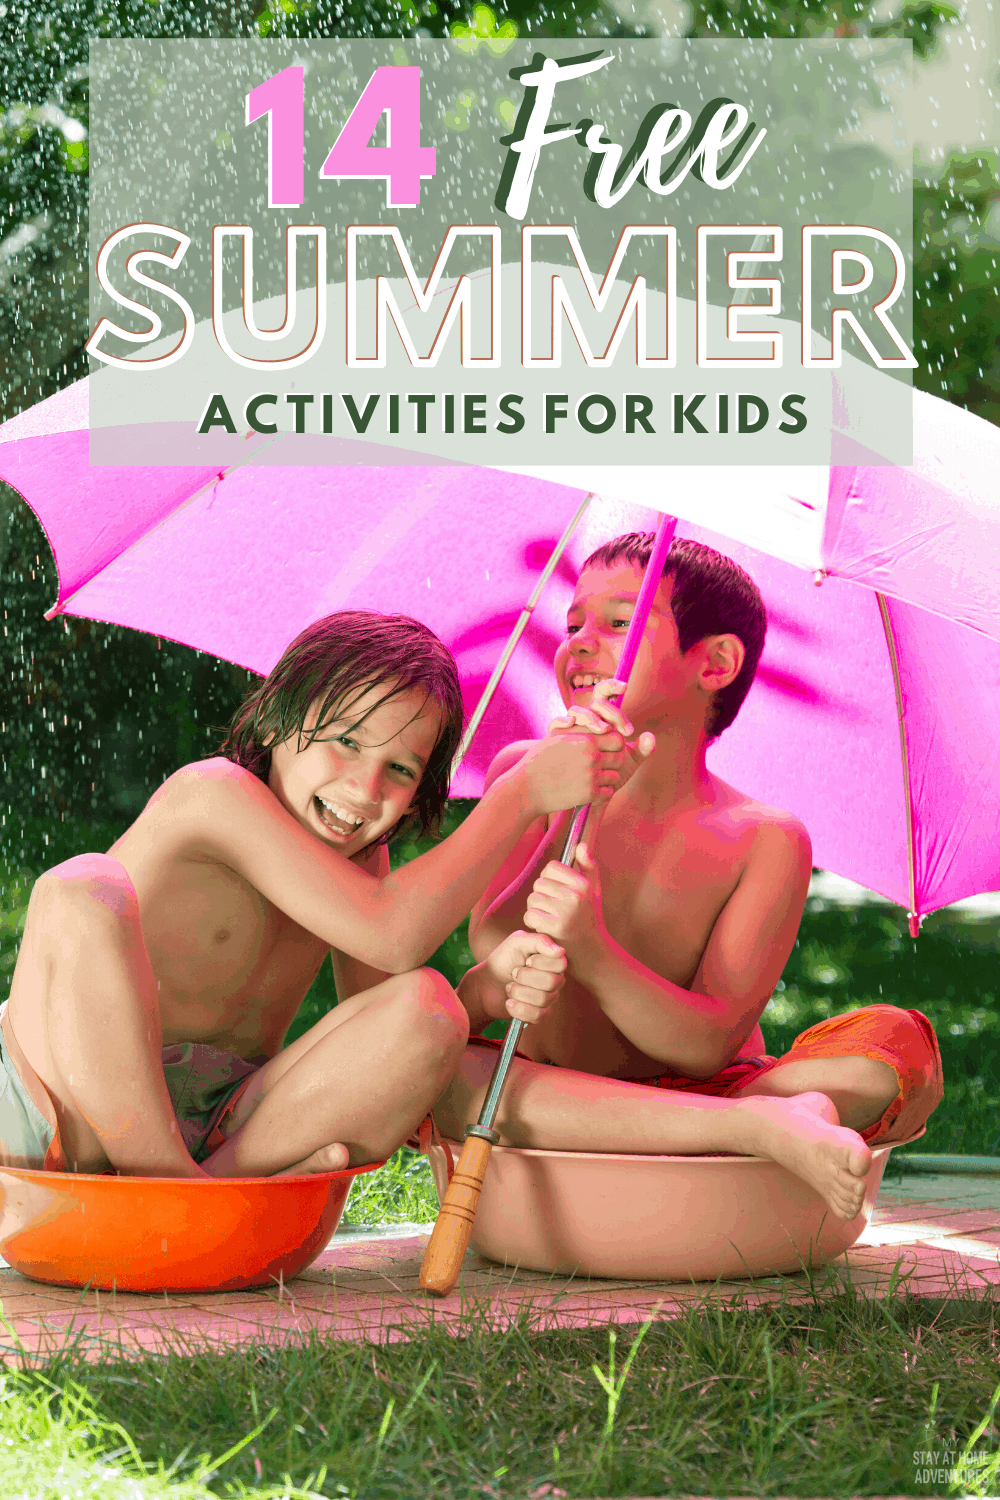 Check out these fourteen free summer activities for kids that won't cost you a dime and your family will enjoy. Start planning today and get the fun started. #activitiesforkids #summeractivities #freesummeractivities #budgetfriendly via @mystayathome